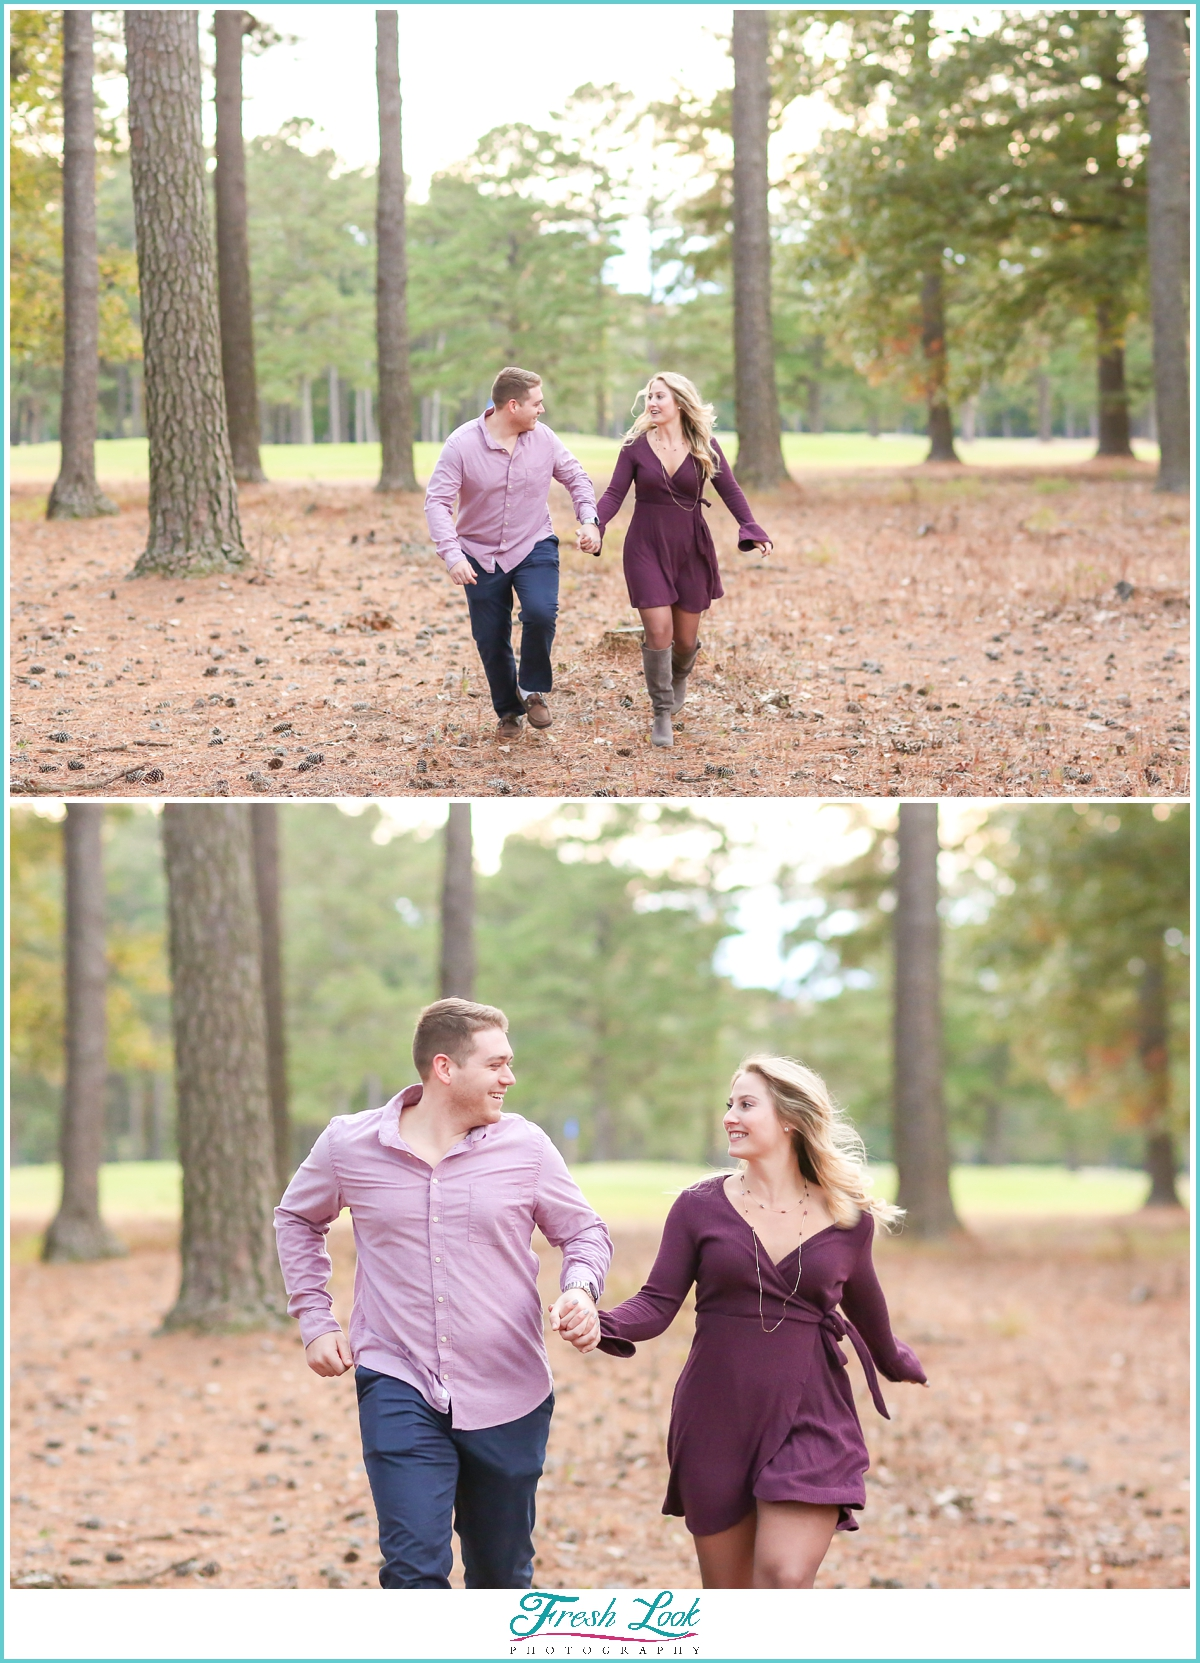 fun engagement photoshoot ideas